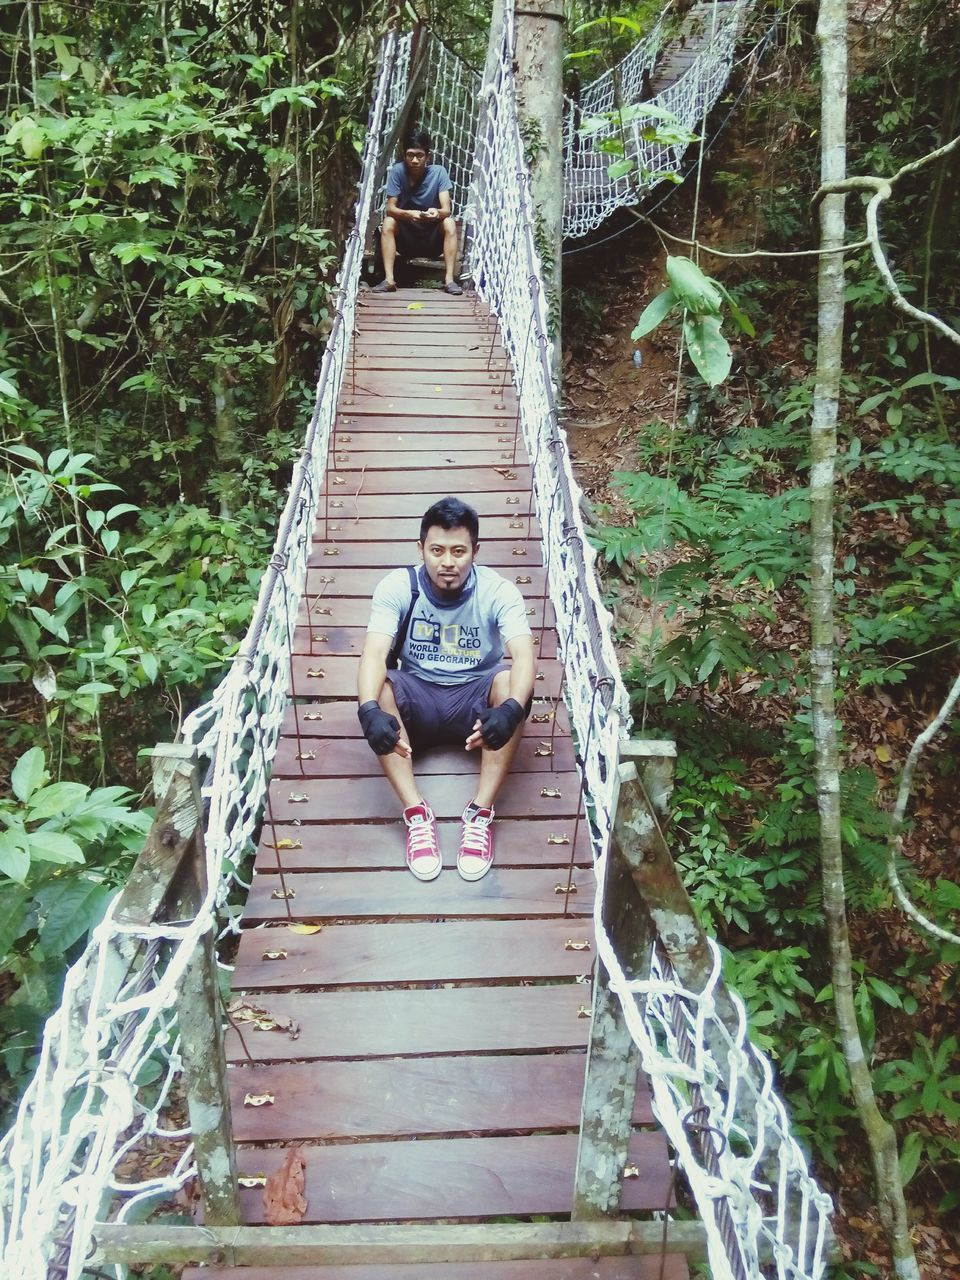 full length, real people, steps, leisure activity, one person, front view, railing, stairs, footbridge, young adult, lifestyles, forest, smiling, outdoors, steps and staircases, casual clothing, tree, looking at camera, young women, bridge - man made structure, day, plant, portrait, growth, happiness, nature, climbing, architecture, people